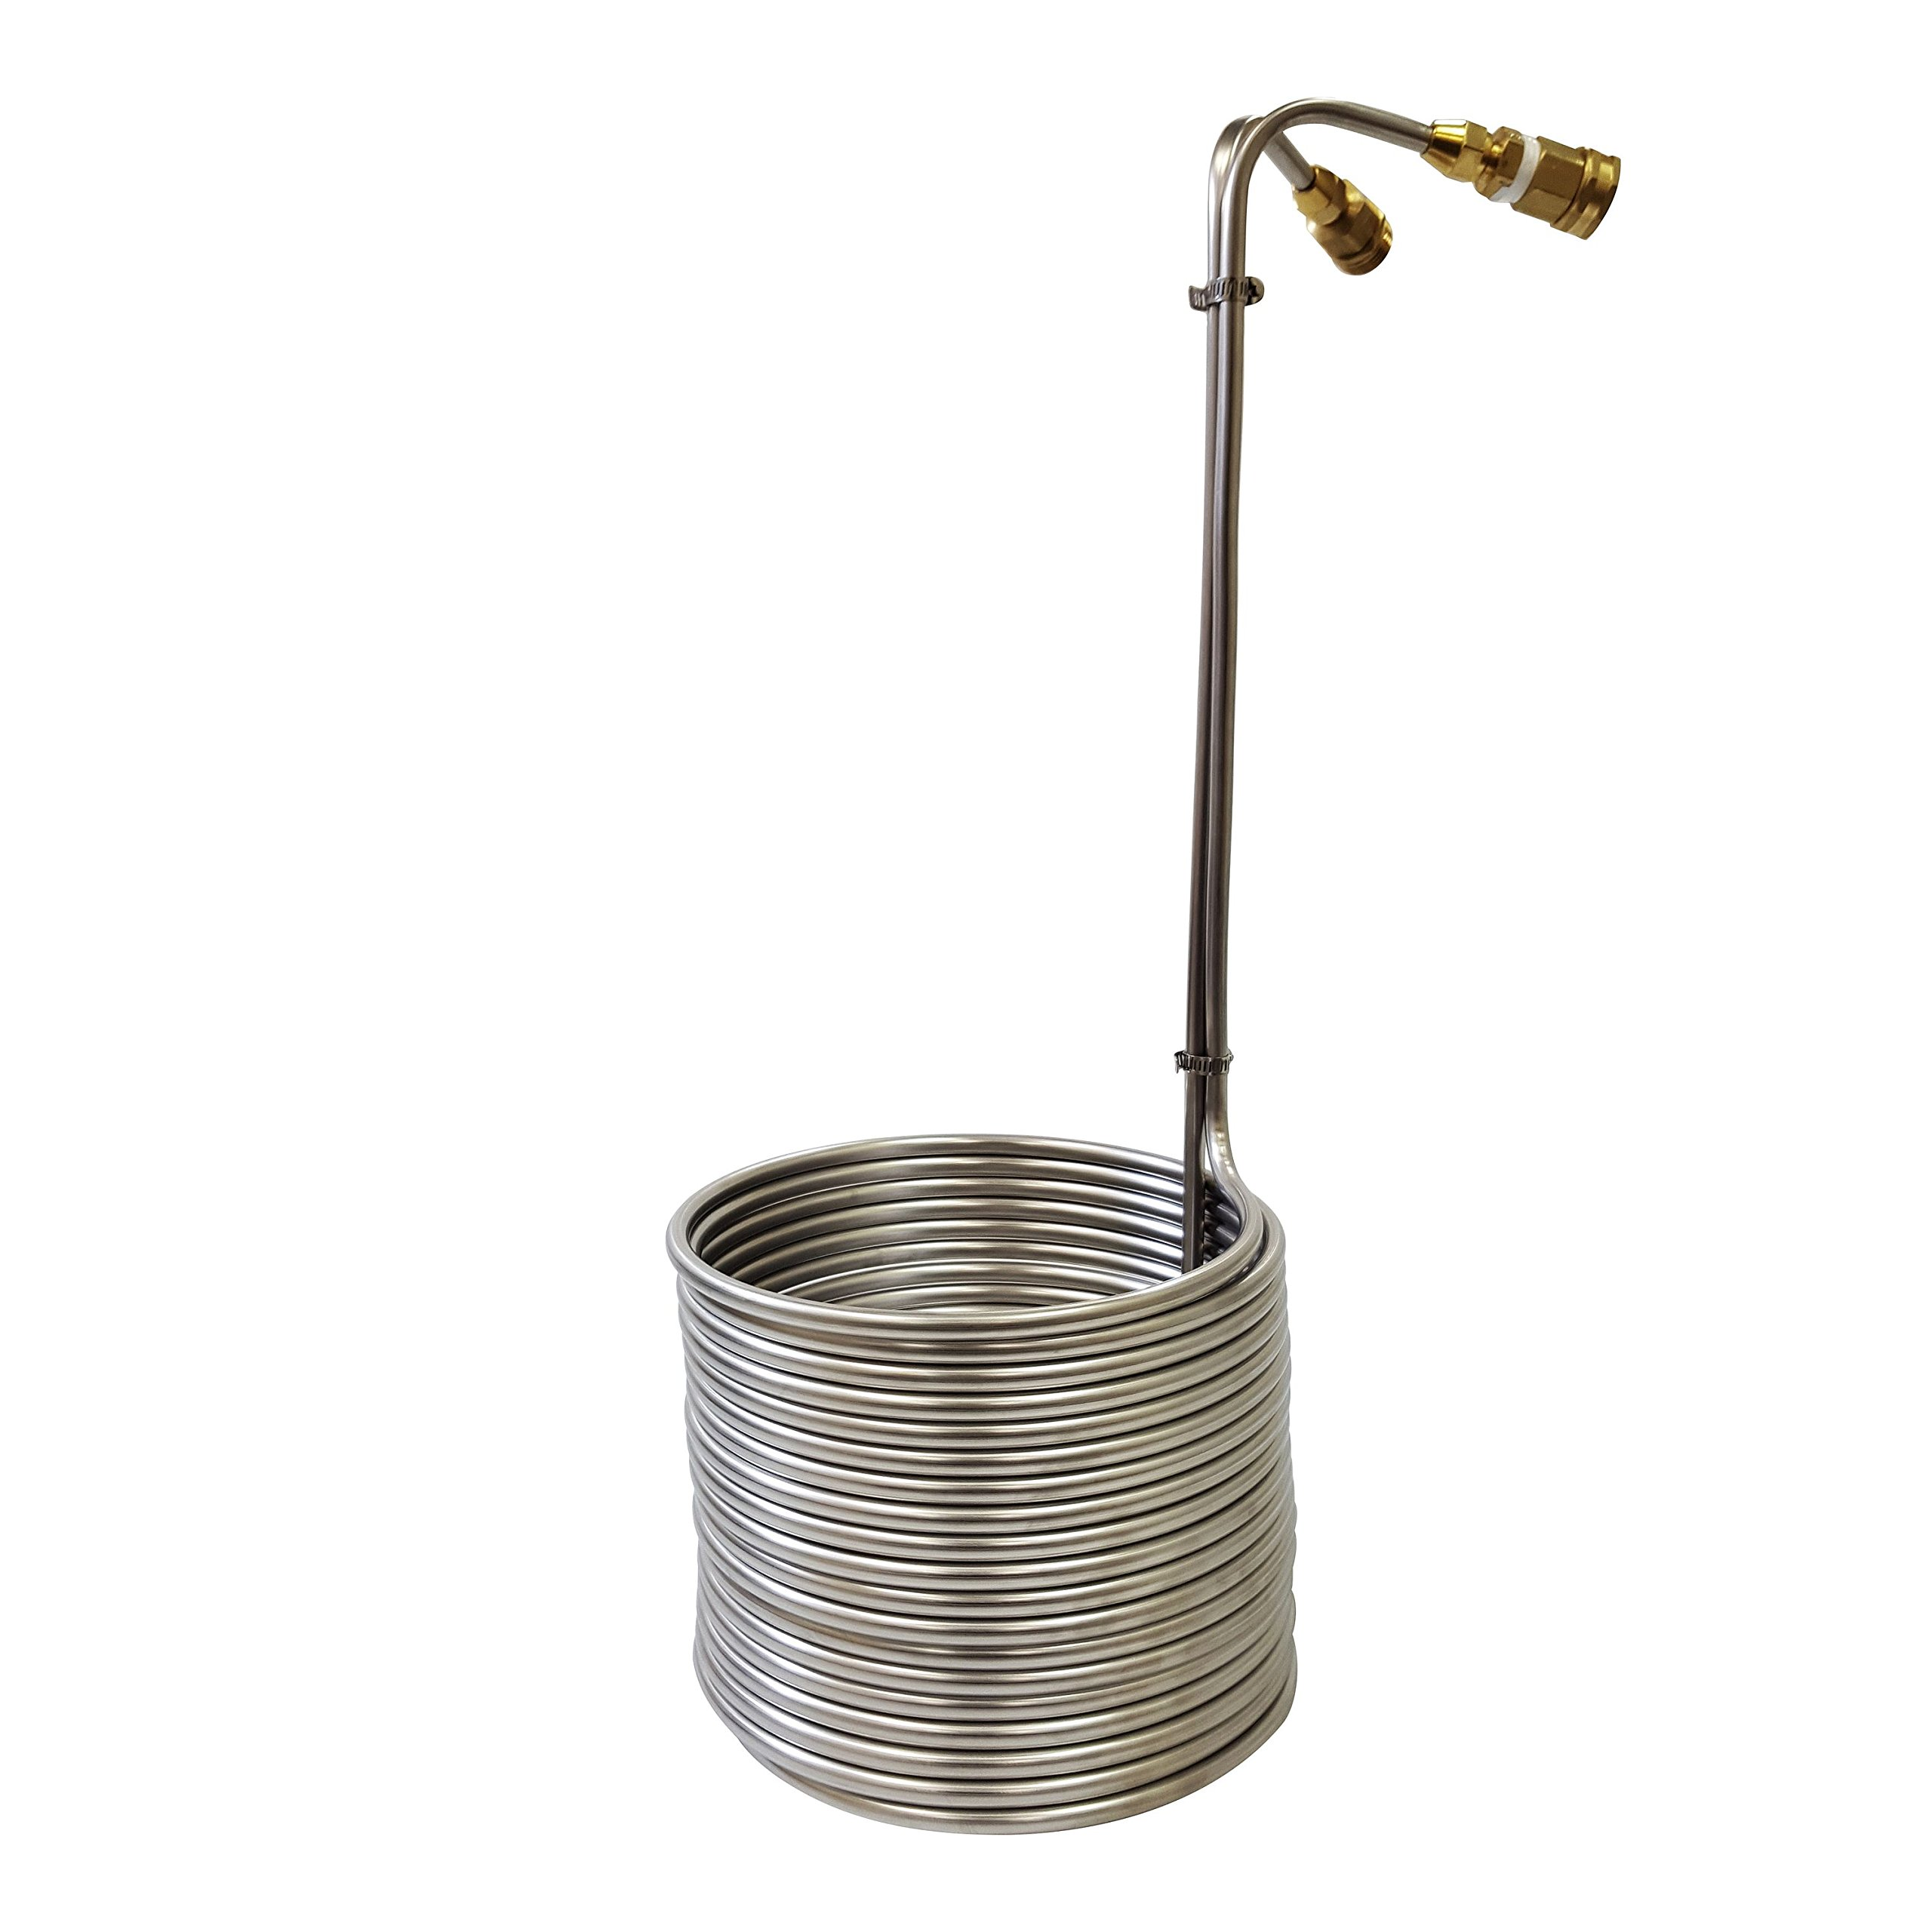 NY Brew Supply Stainless Wort Chiller with Garden Hose Fittings, 3/8'' x 50', Silver